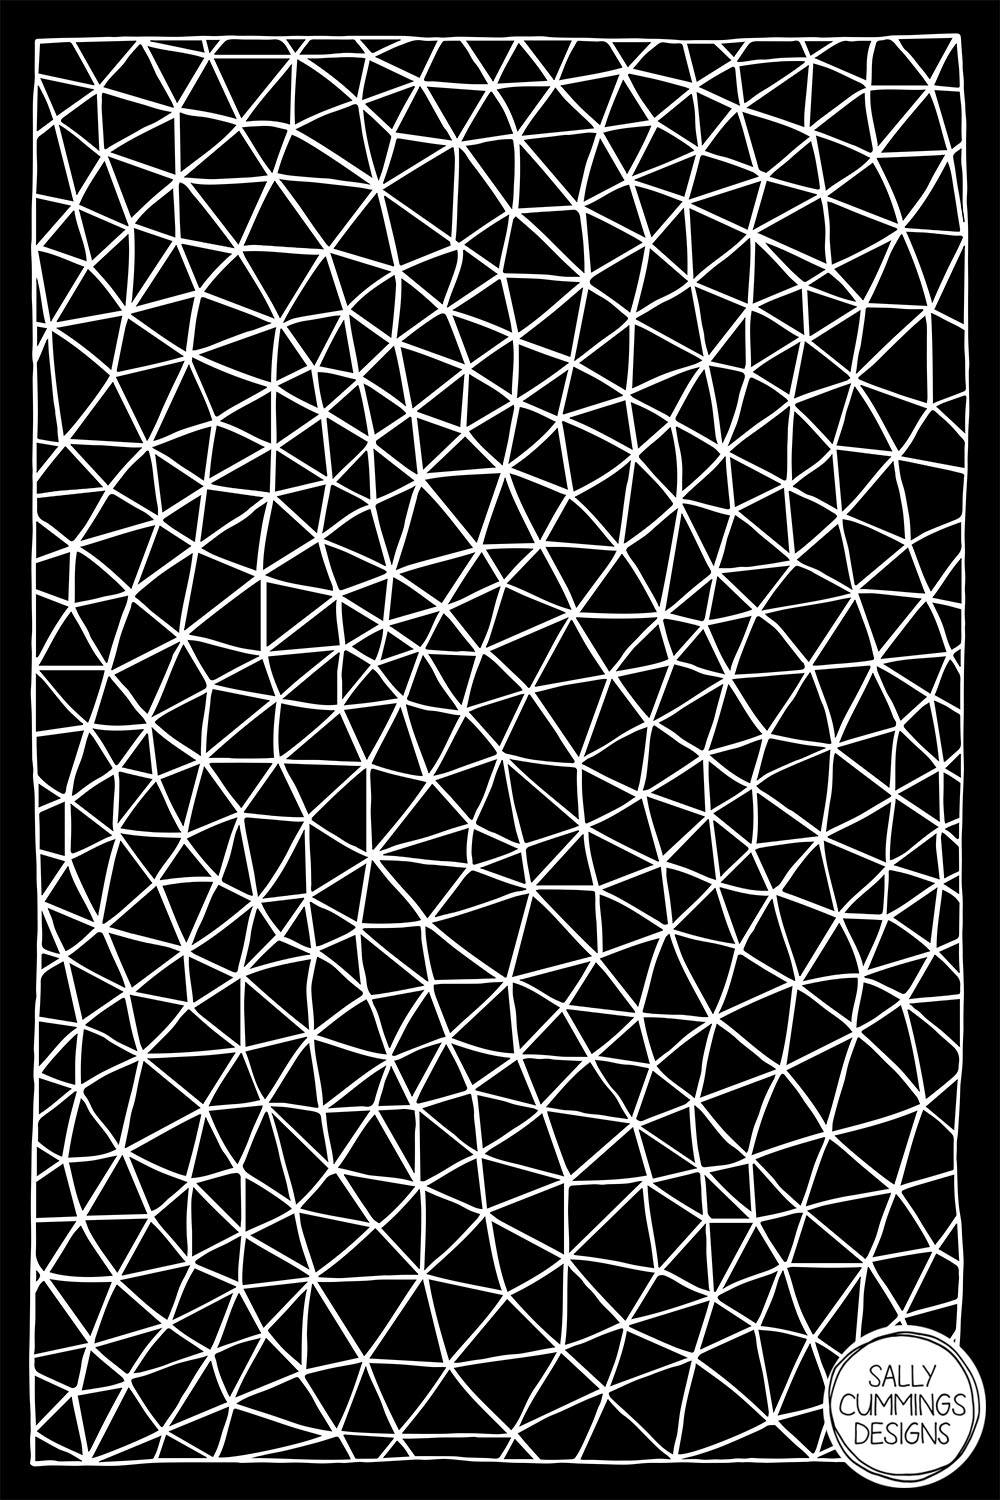 Sally Cummings Designs - Connectivity (White on Black)